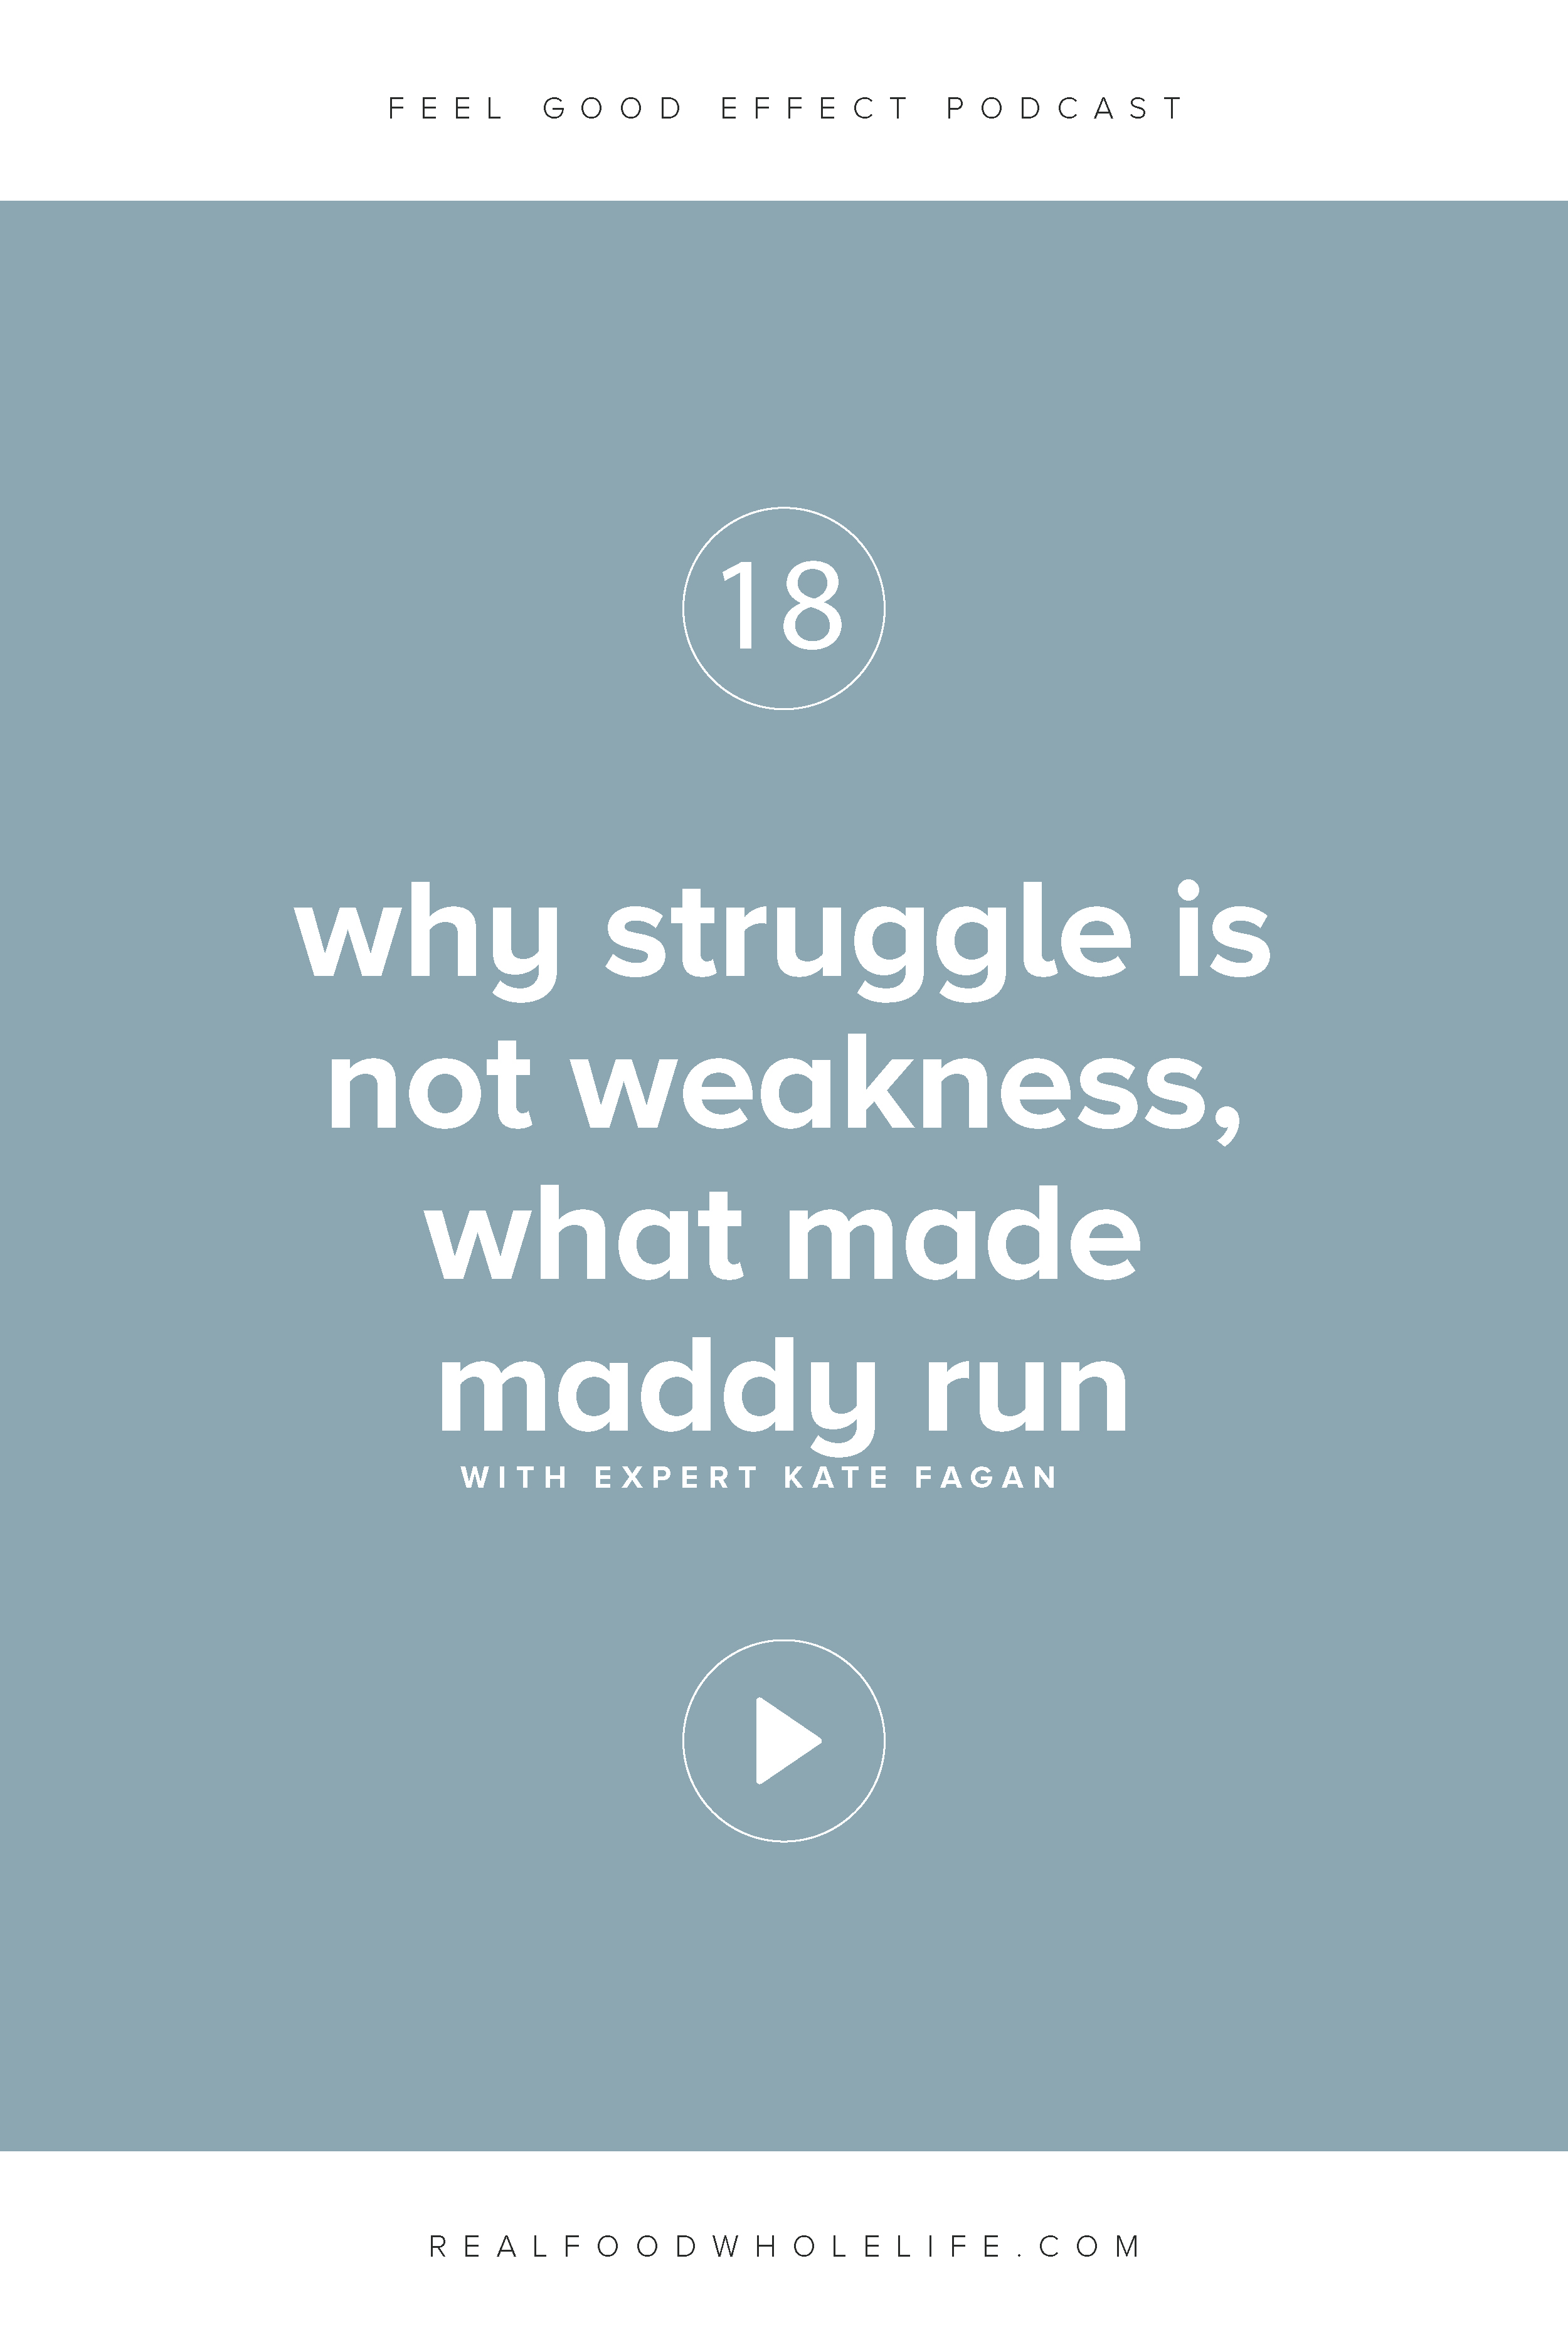 Why Struggle is Not Weakness with Kate Fagan, What Made Maddy Run